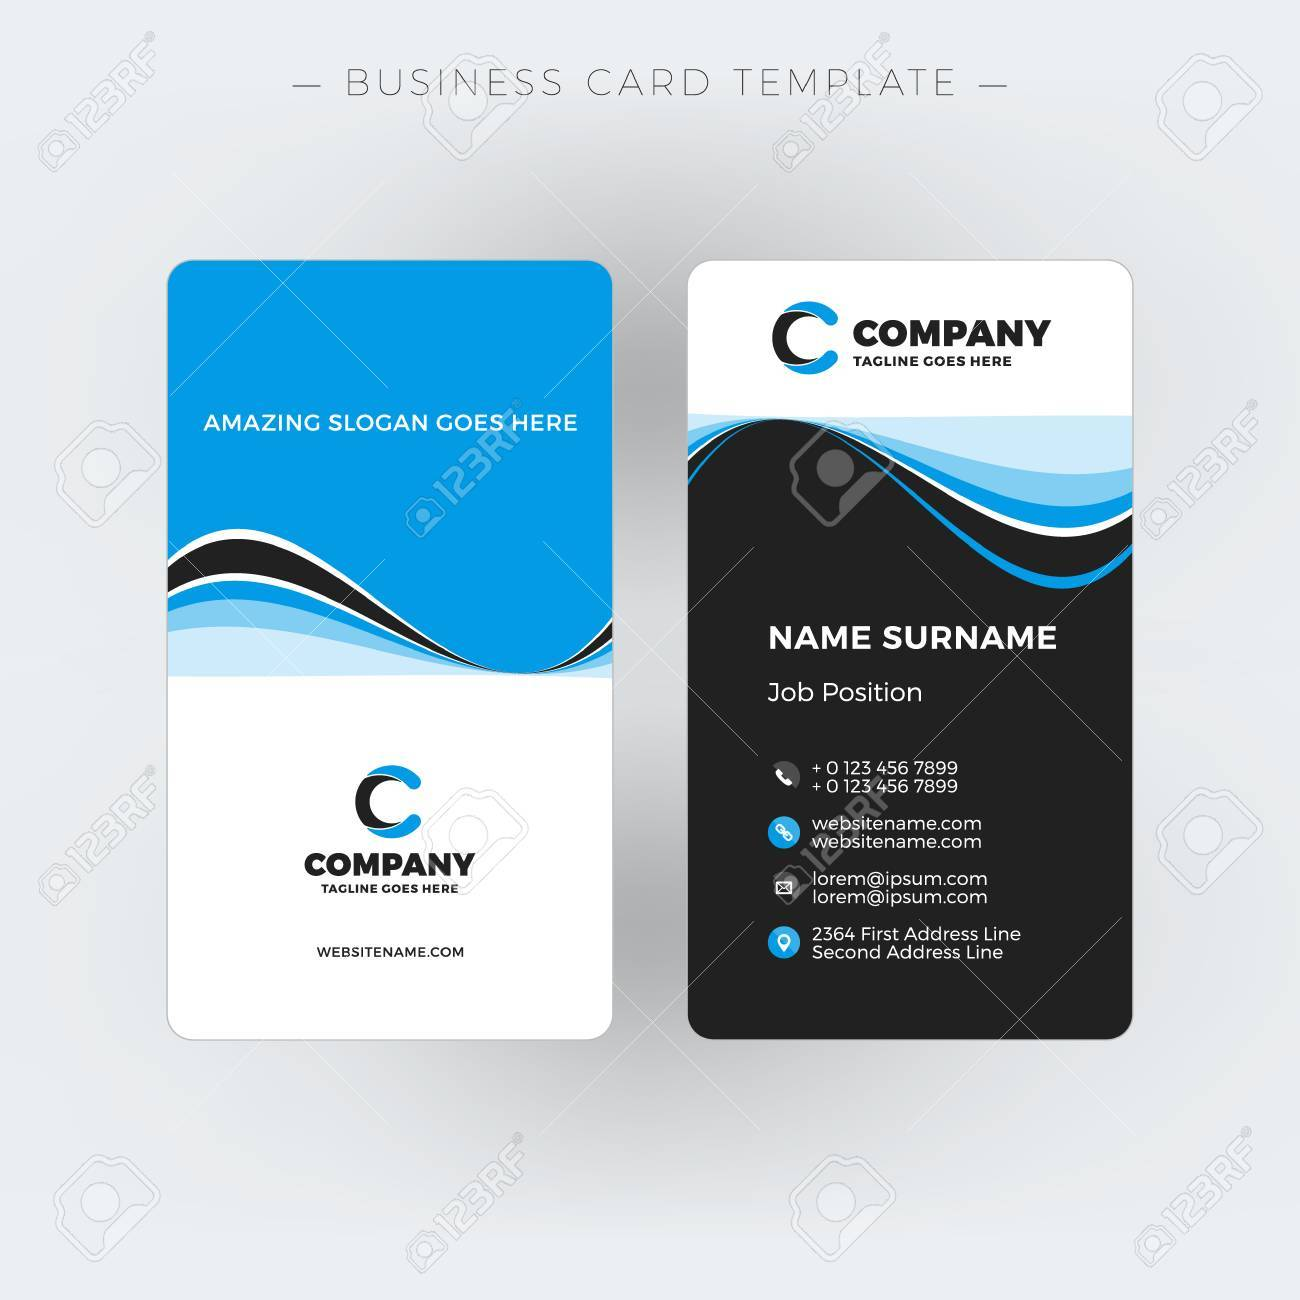 Vertical Doublesided Business Card Template Vector Illustration - Double sided business card template